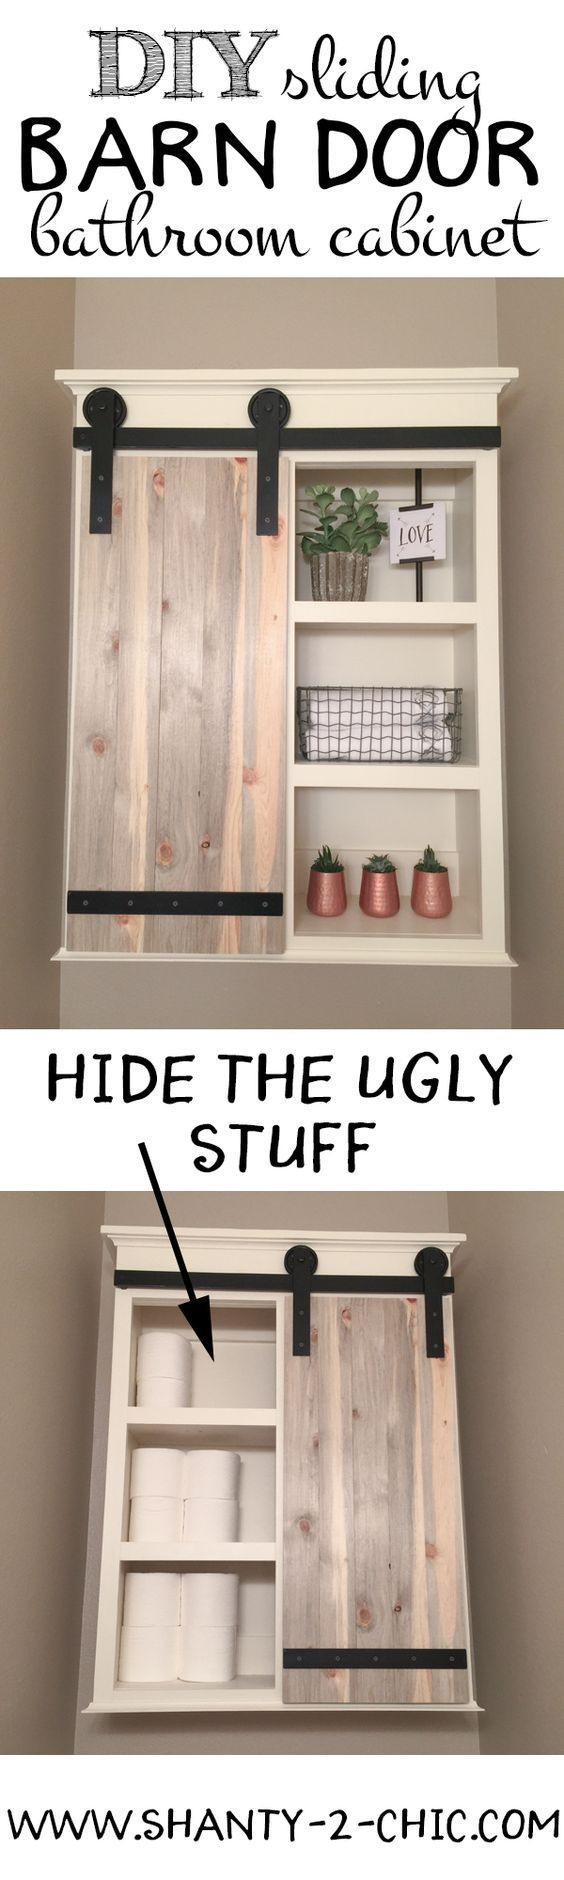 DIY Sliding Barn Door Bathroom CabinetBest 25  Diy bathroom decor ideas only on Pinterest   Bathroom  . Diy Small Bathroom Decor Pinterest. Home Design Ideas